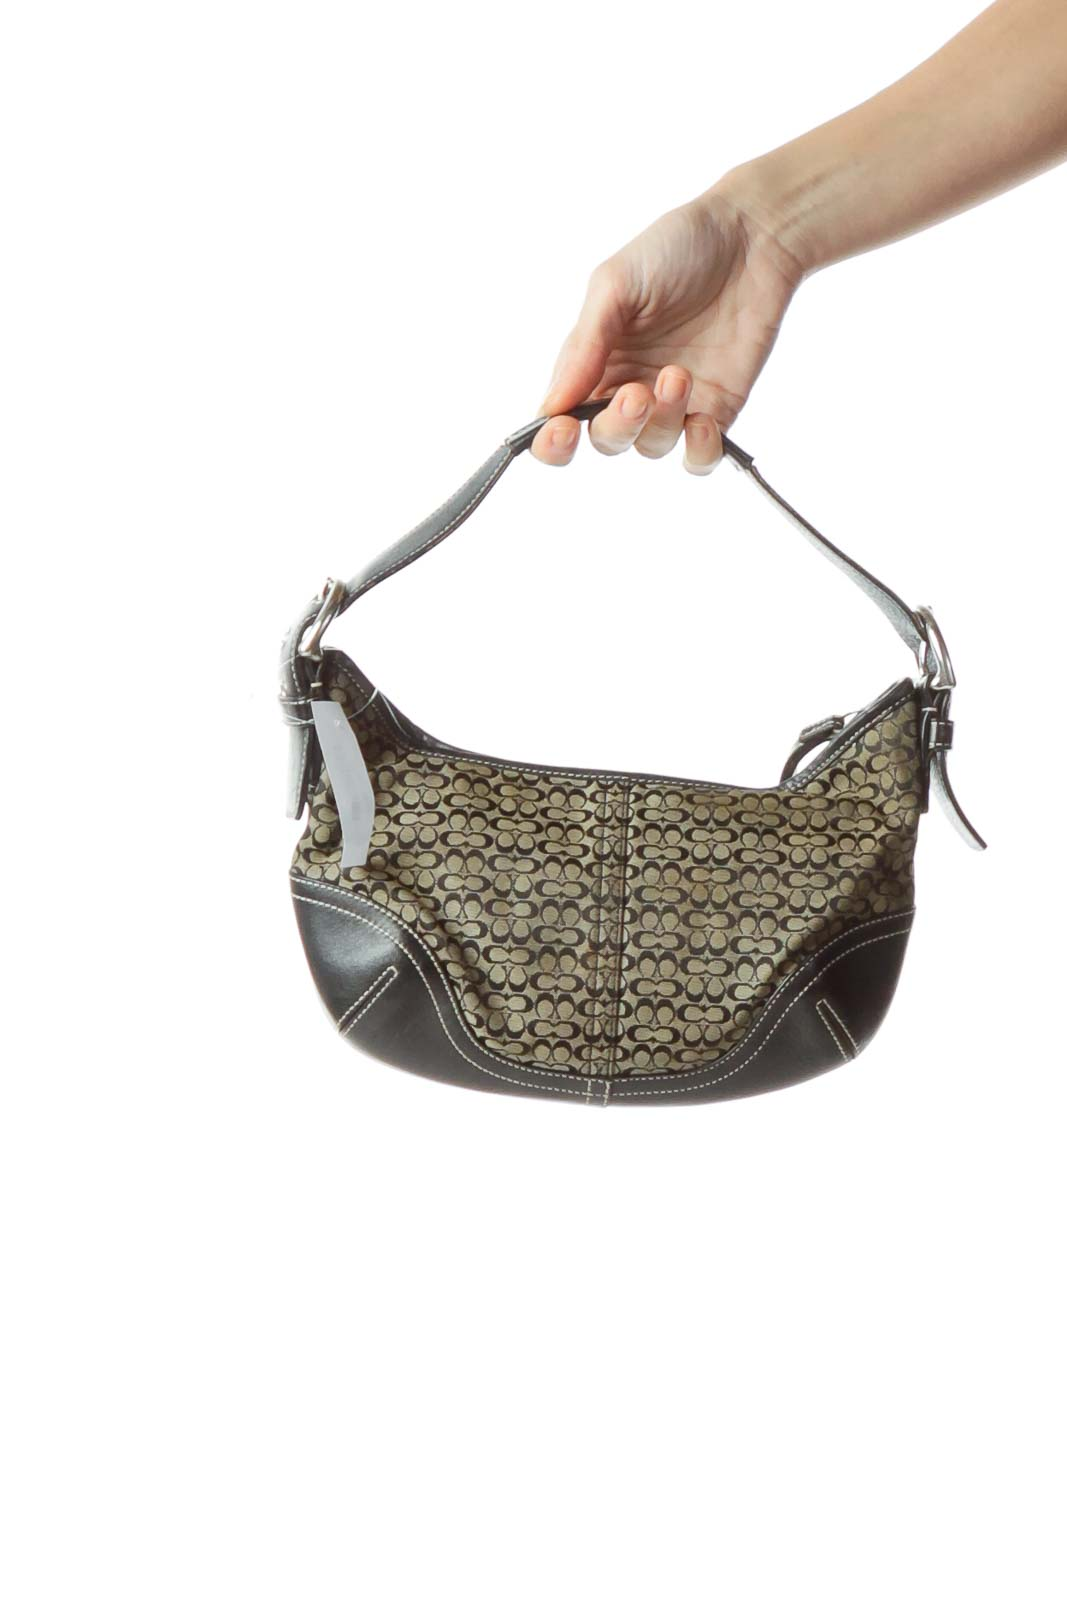 Shop Coach clothing and handbags at SilkRoll. Trade with us! 1a3f47b1a4ac6